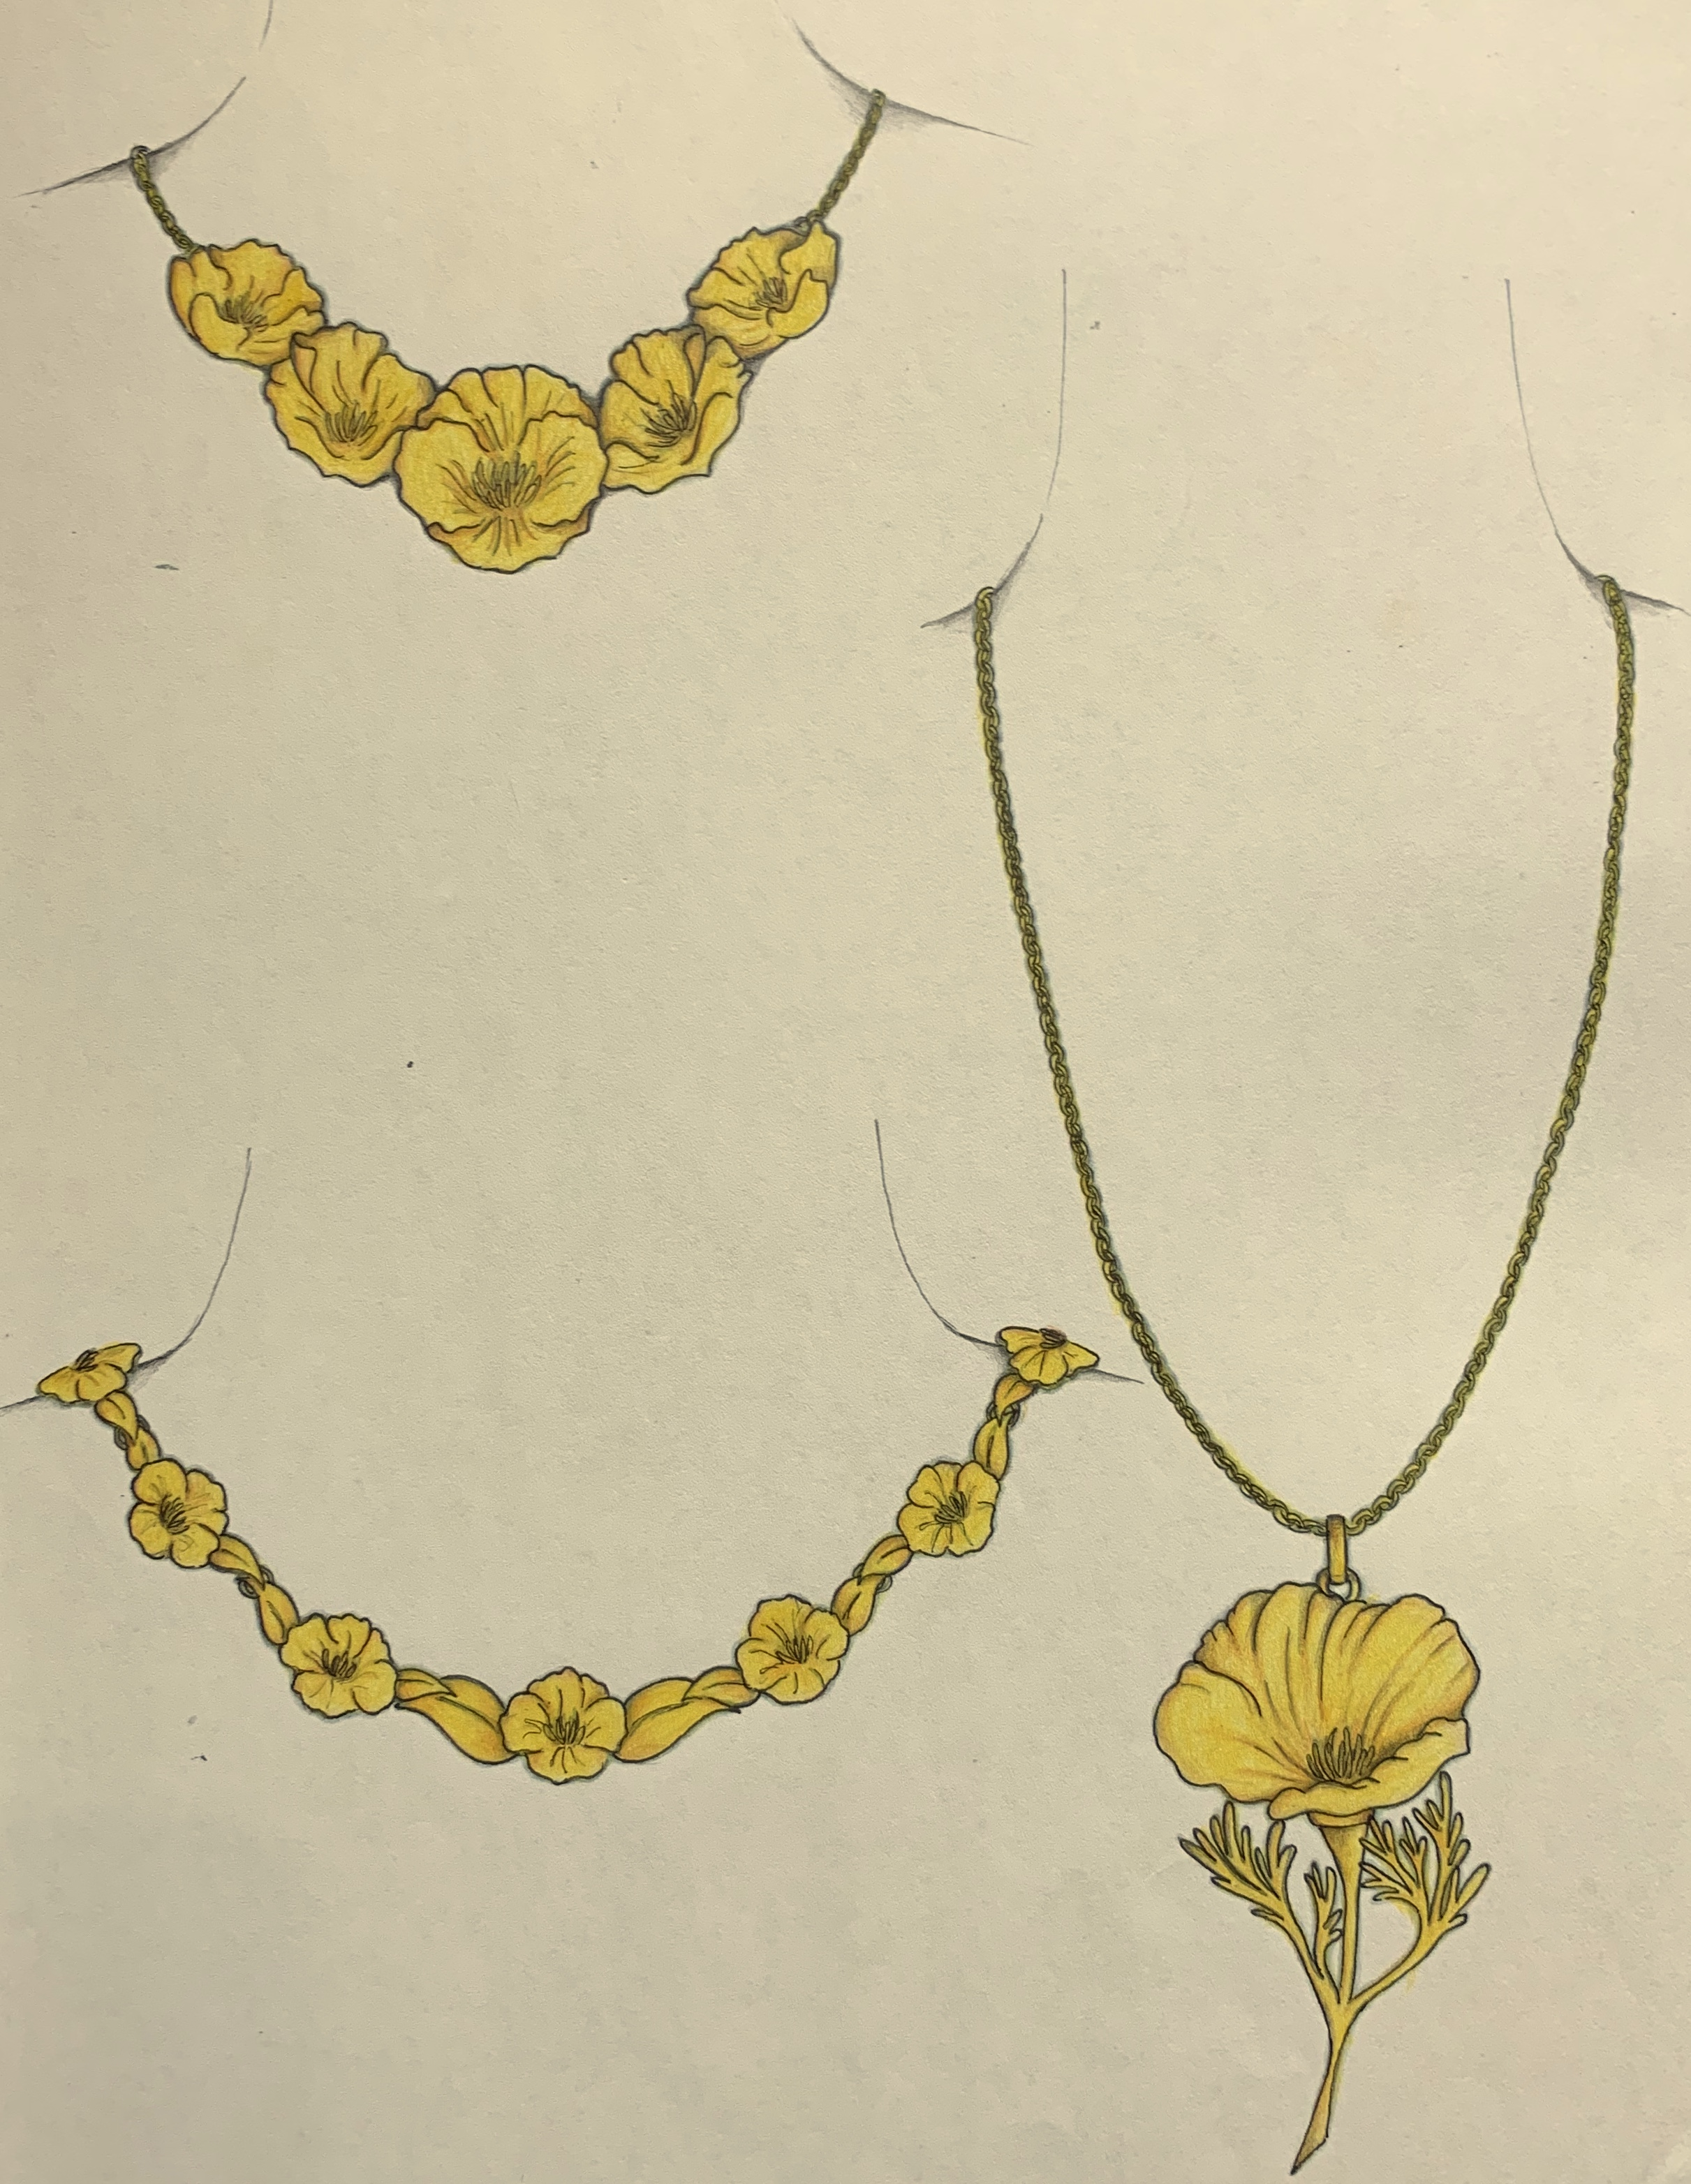 California poppy designs for a necklace.